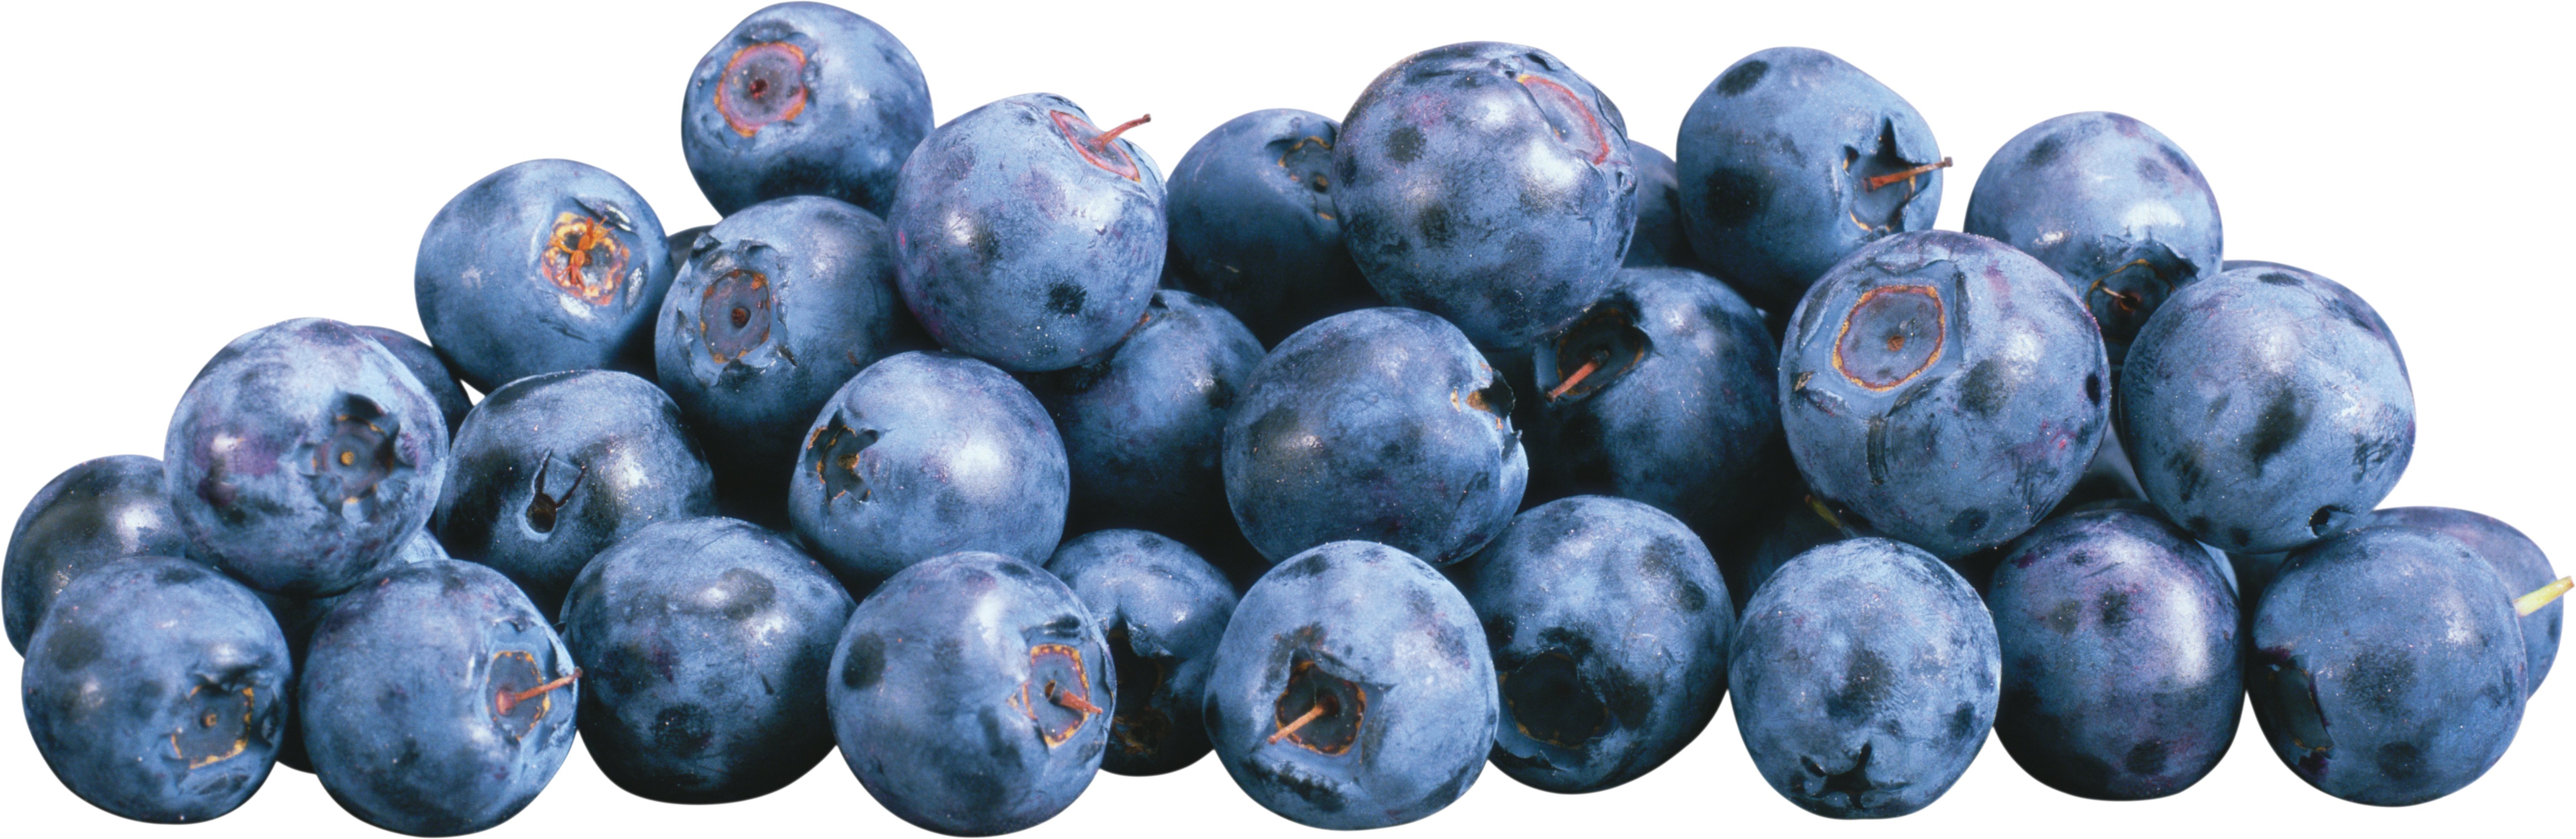 Blueberrys PNG Image